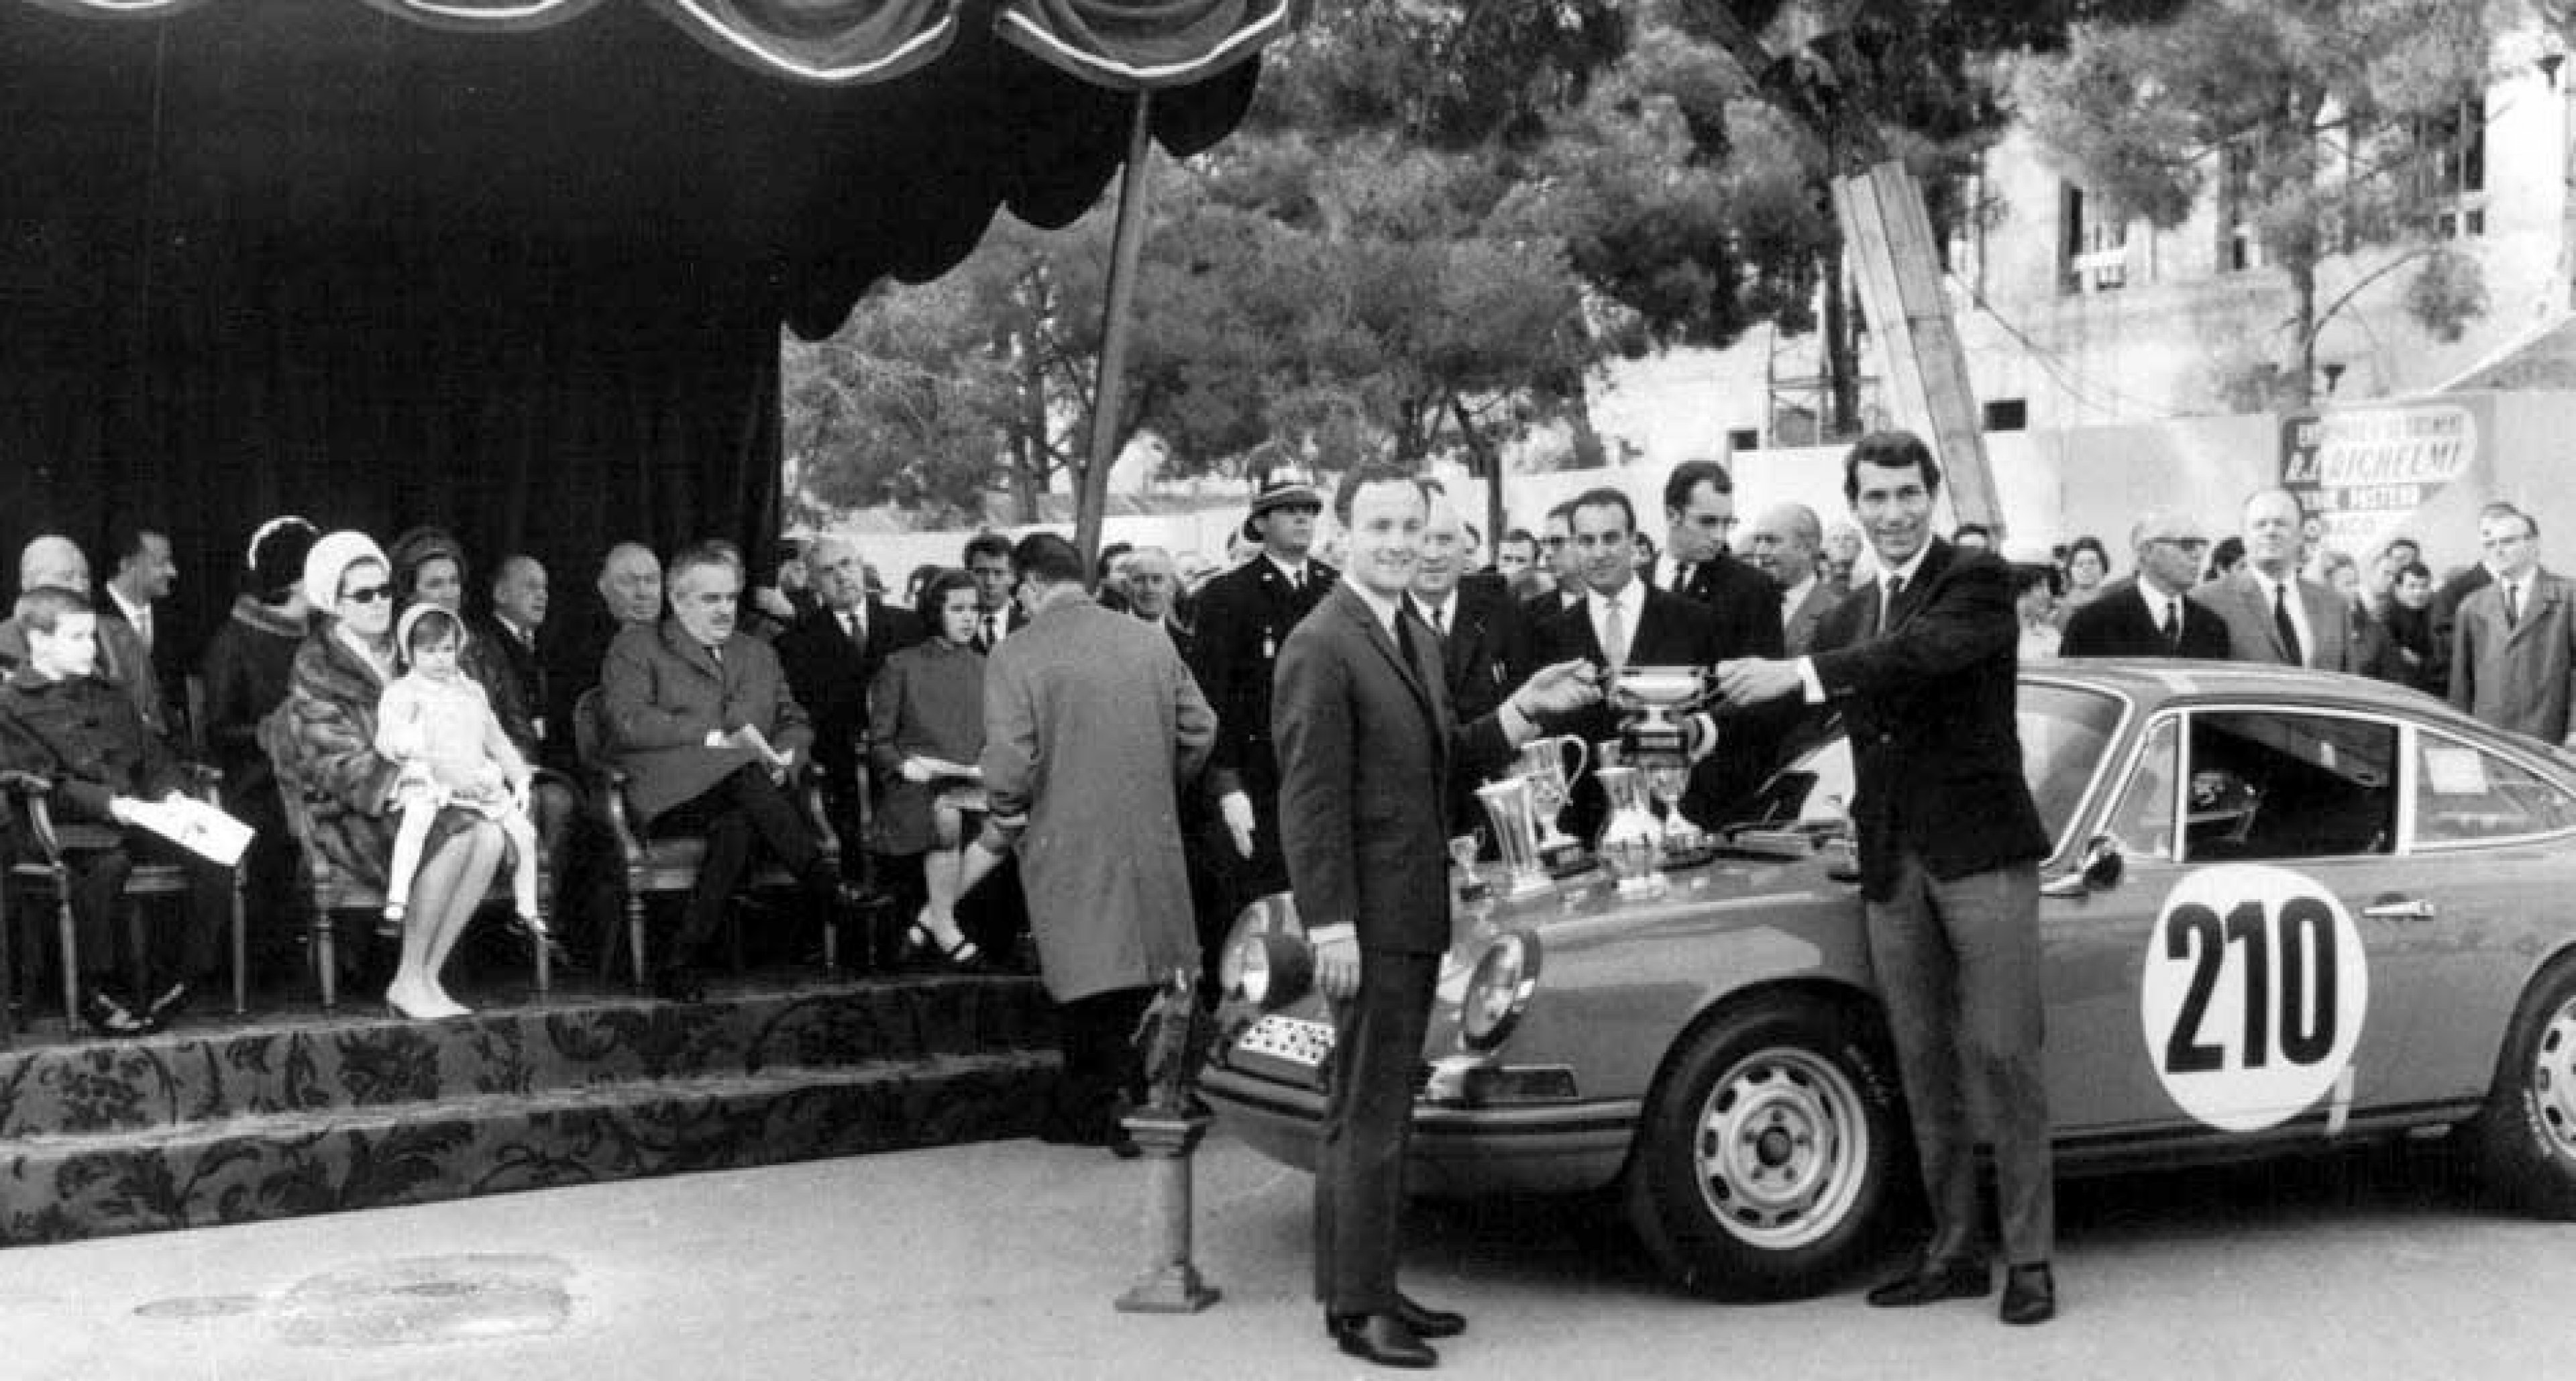 A year of hard work brought its own reward – Monte Carlo victory 1968, and the resulting silverware presented by Prince Rainier, Princess Grace and the children, Caroline, Albert and Stephanie.